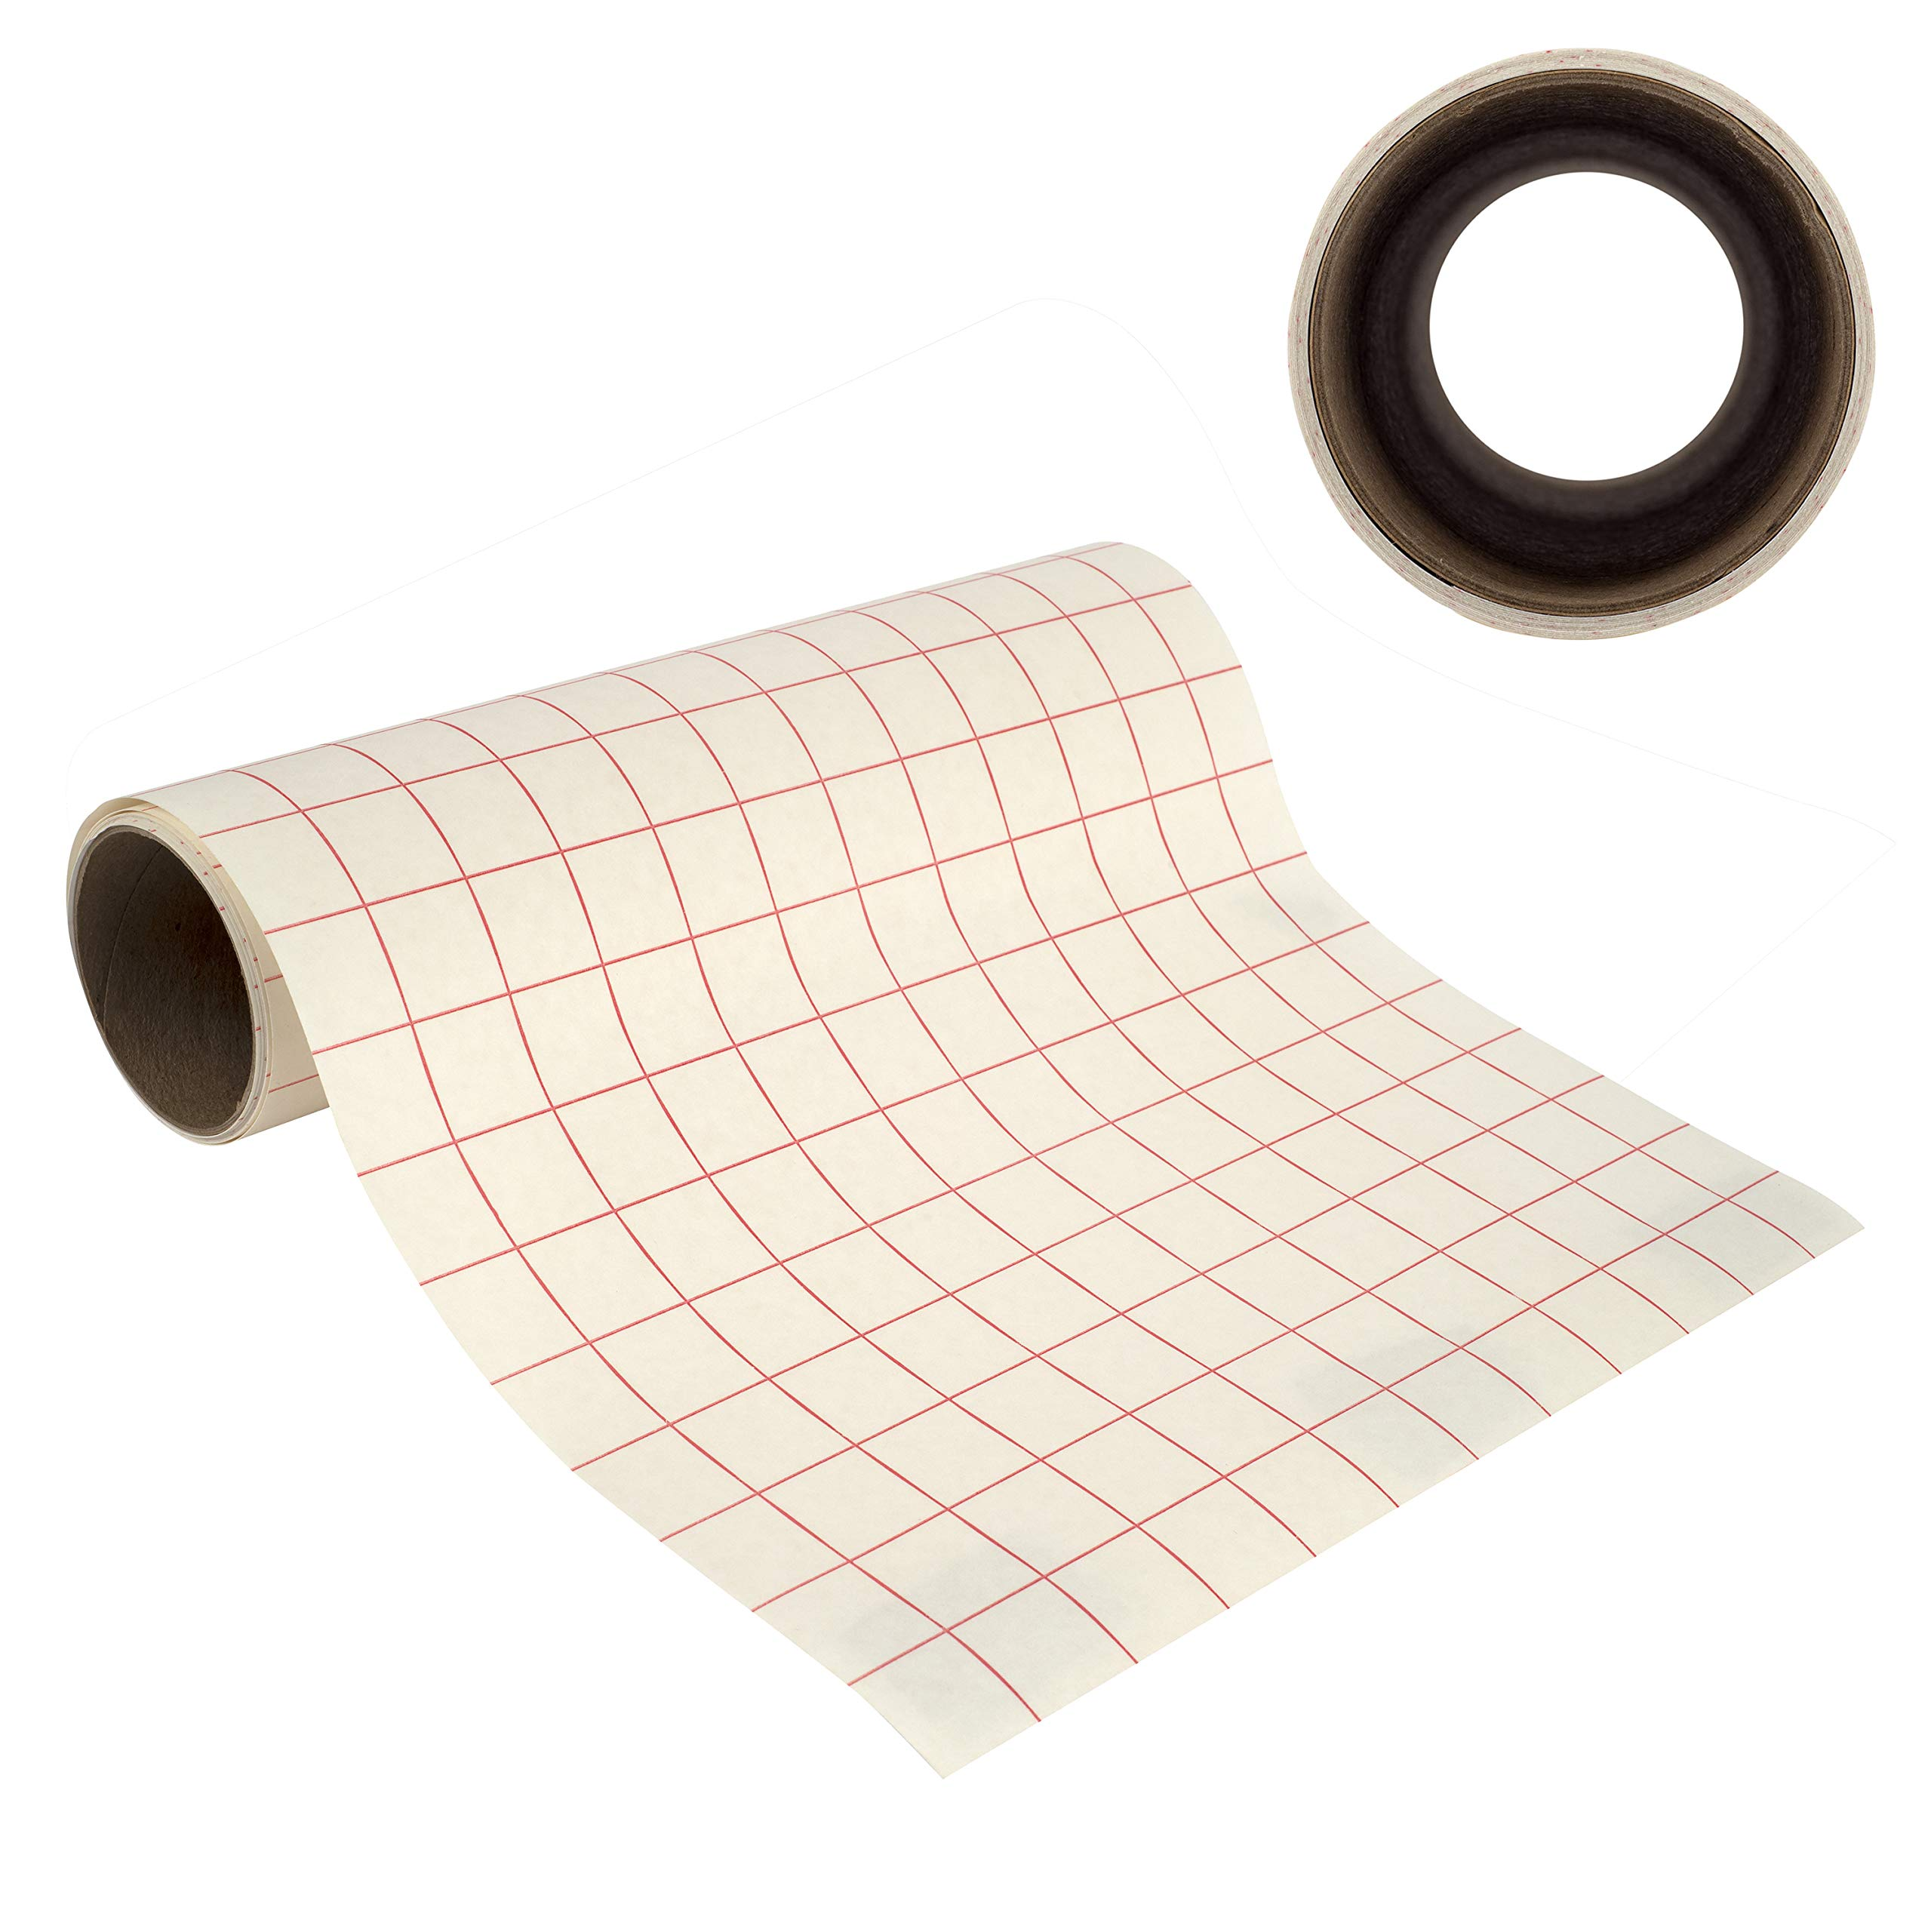 Angel Crafts 12'' by 8' PREMIUM Transfer Paper Tape Roll with Grid - PERFECT ALIGNMENT for Cricut or Silhouette Cameo Self Adhesive Vinyl for Walls, Signs, Decals, Windows, and More by Angel Crafts